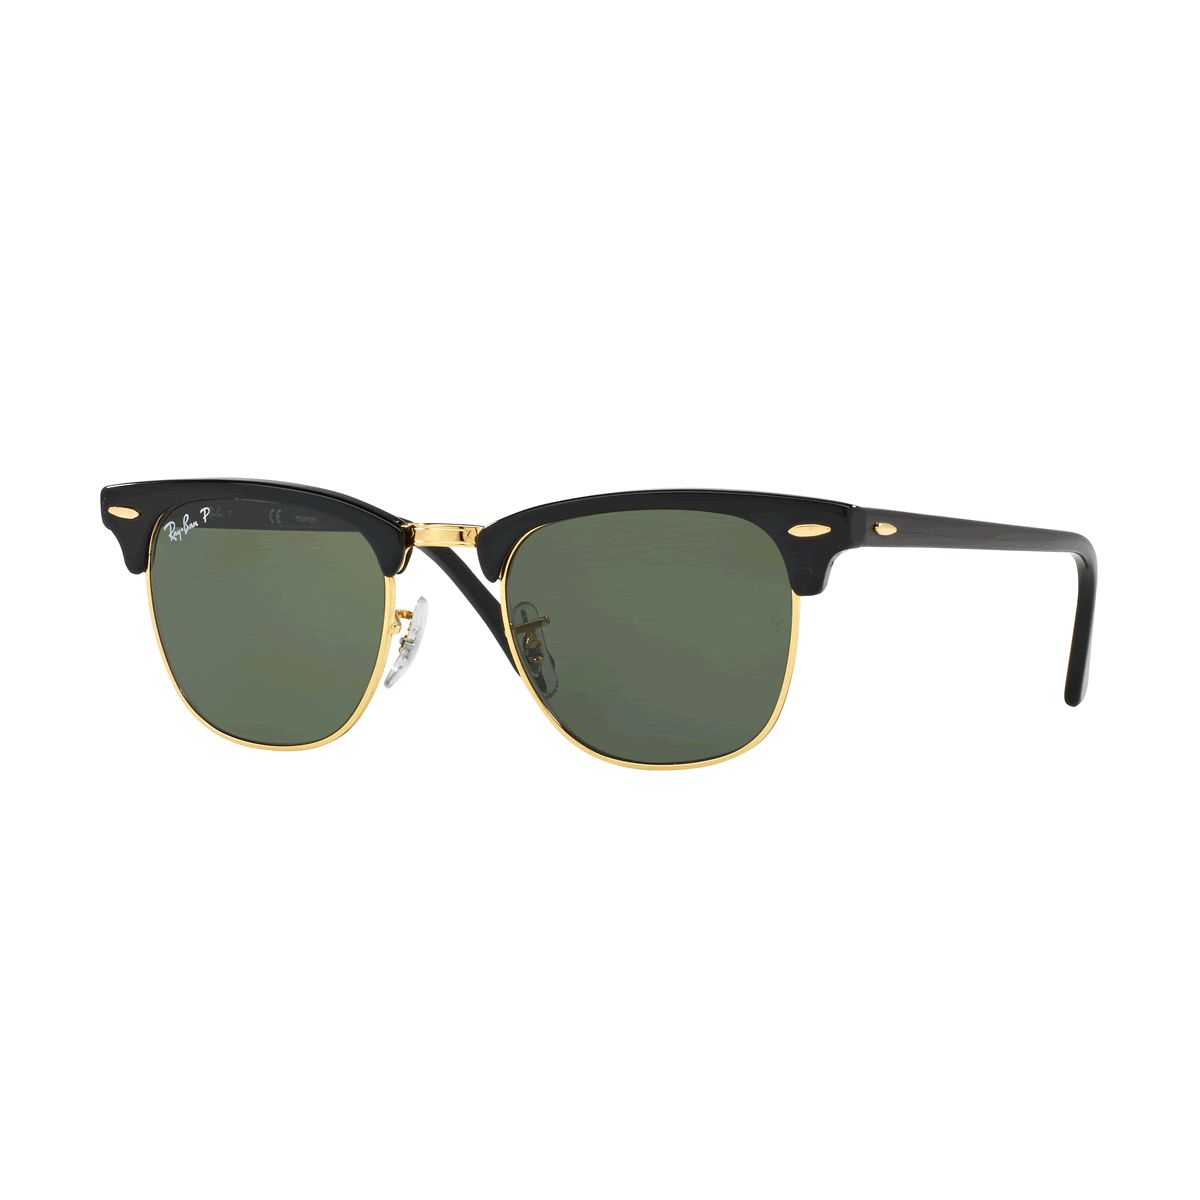 f2a2edd5d2 Ray-Ban Sunglasses - Mens   Womens Ray-Bans - Macy s